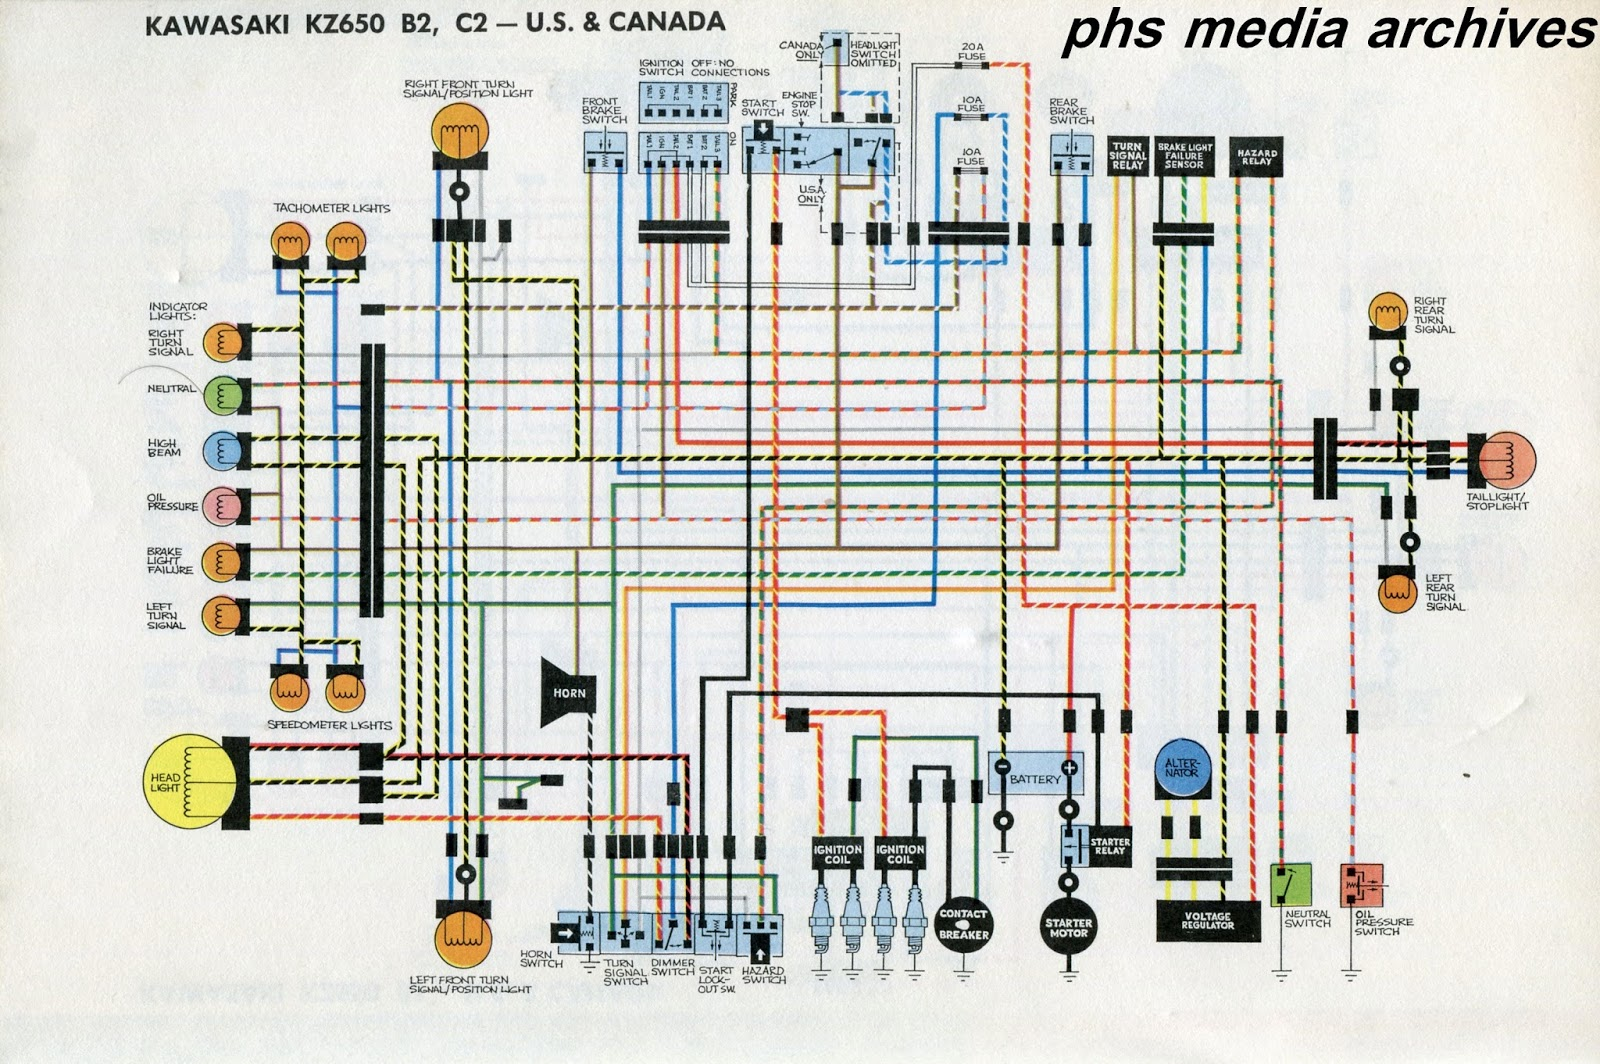 Tech Series Kawasaki Kz650 Wiring Diagrams Phscollectorcarworld Type 181 Diagram The Above Chart Covers North American B1 Bikes For United States And Canadaa Nice Feature Here Is Wires Elements Are In Color Easier